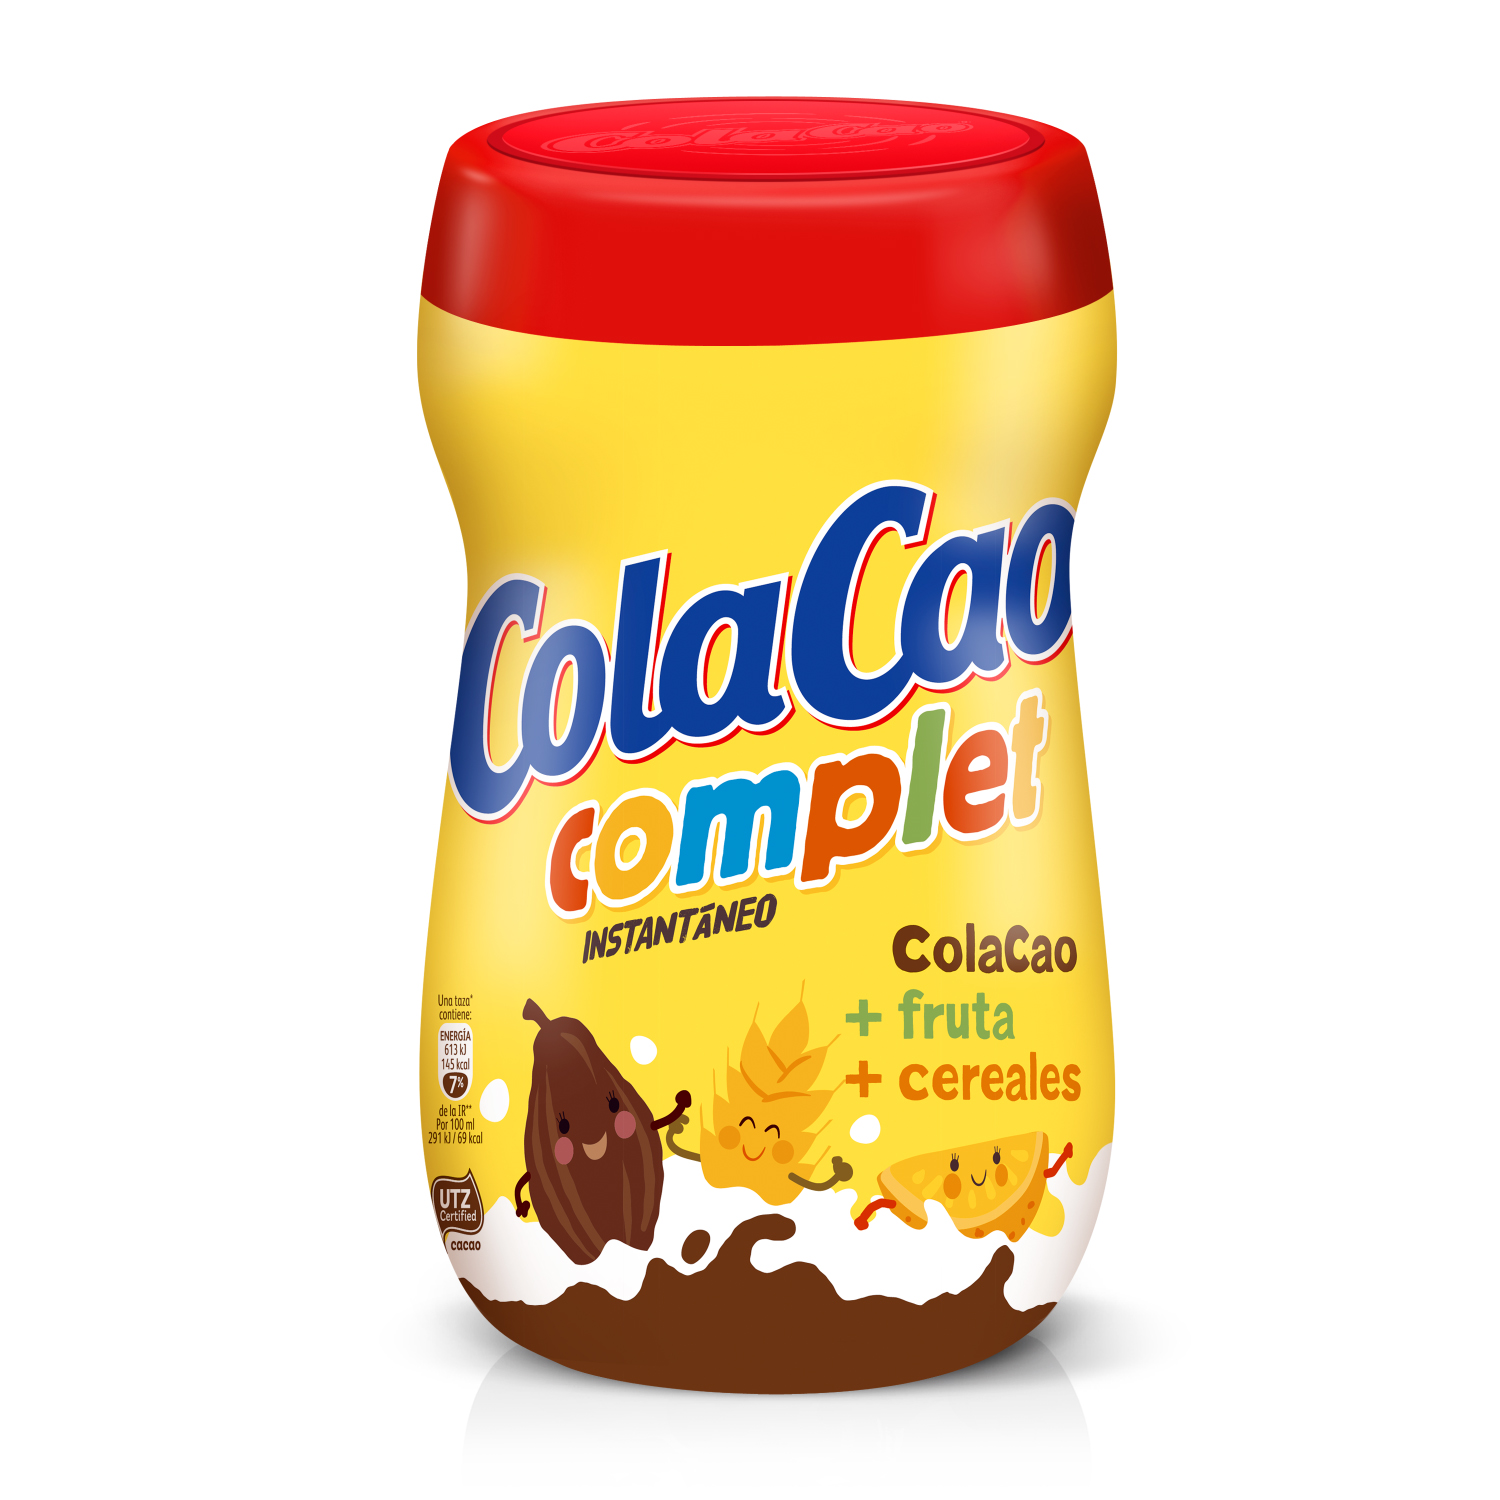 Cacao soluble instantáneo Cola Cao Complet 750 g.